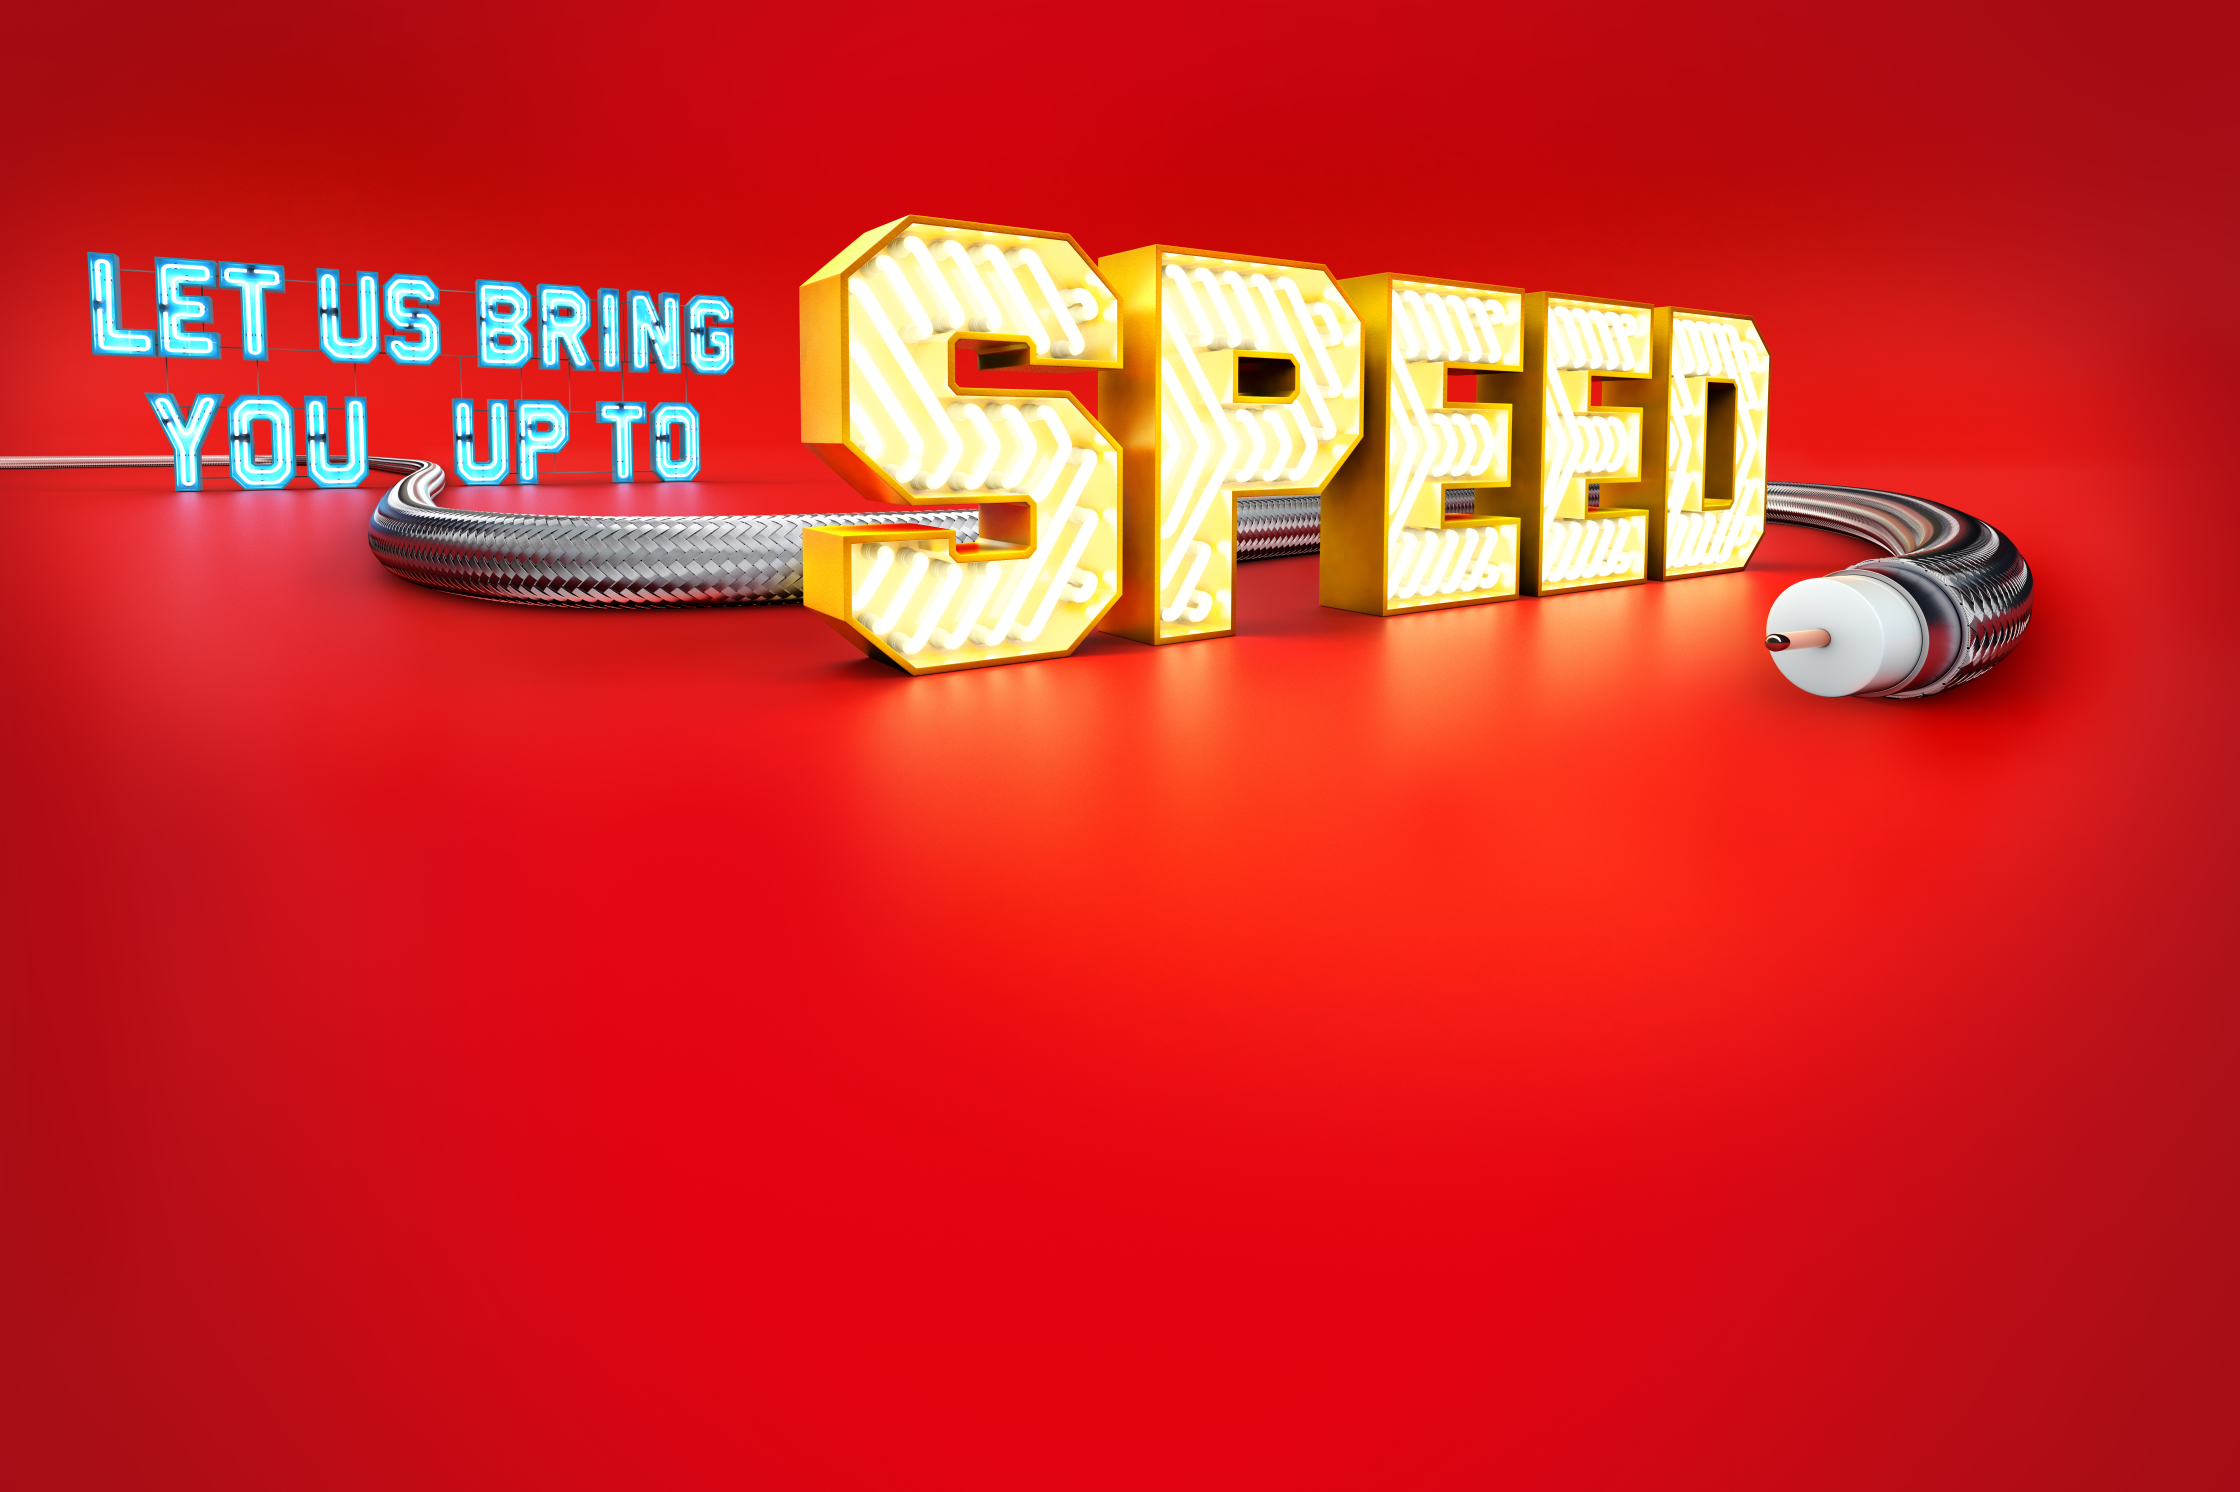 hitandrun_SPEED_01.jpg